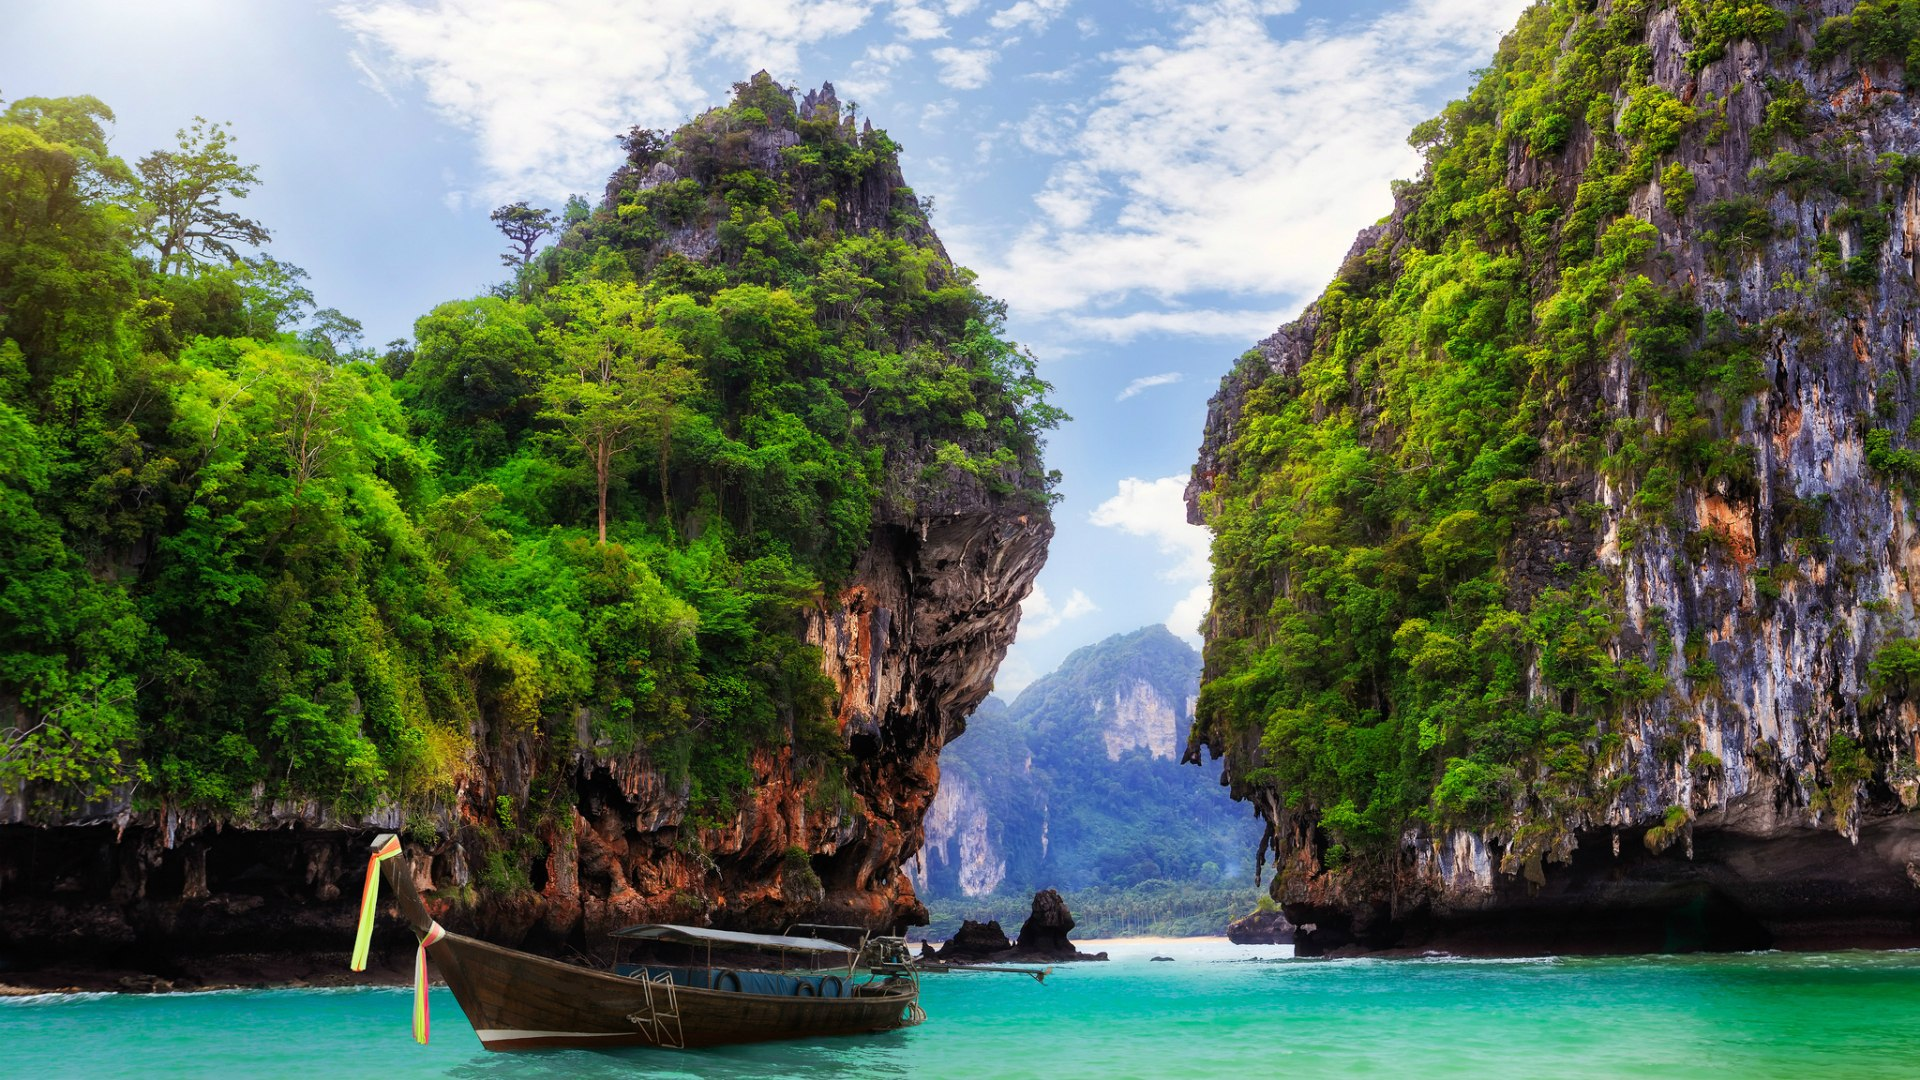 Thailand - photo wallpapers, pictures with Thailand views